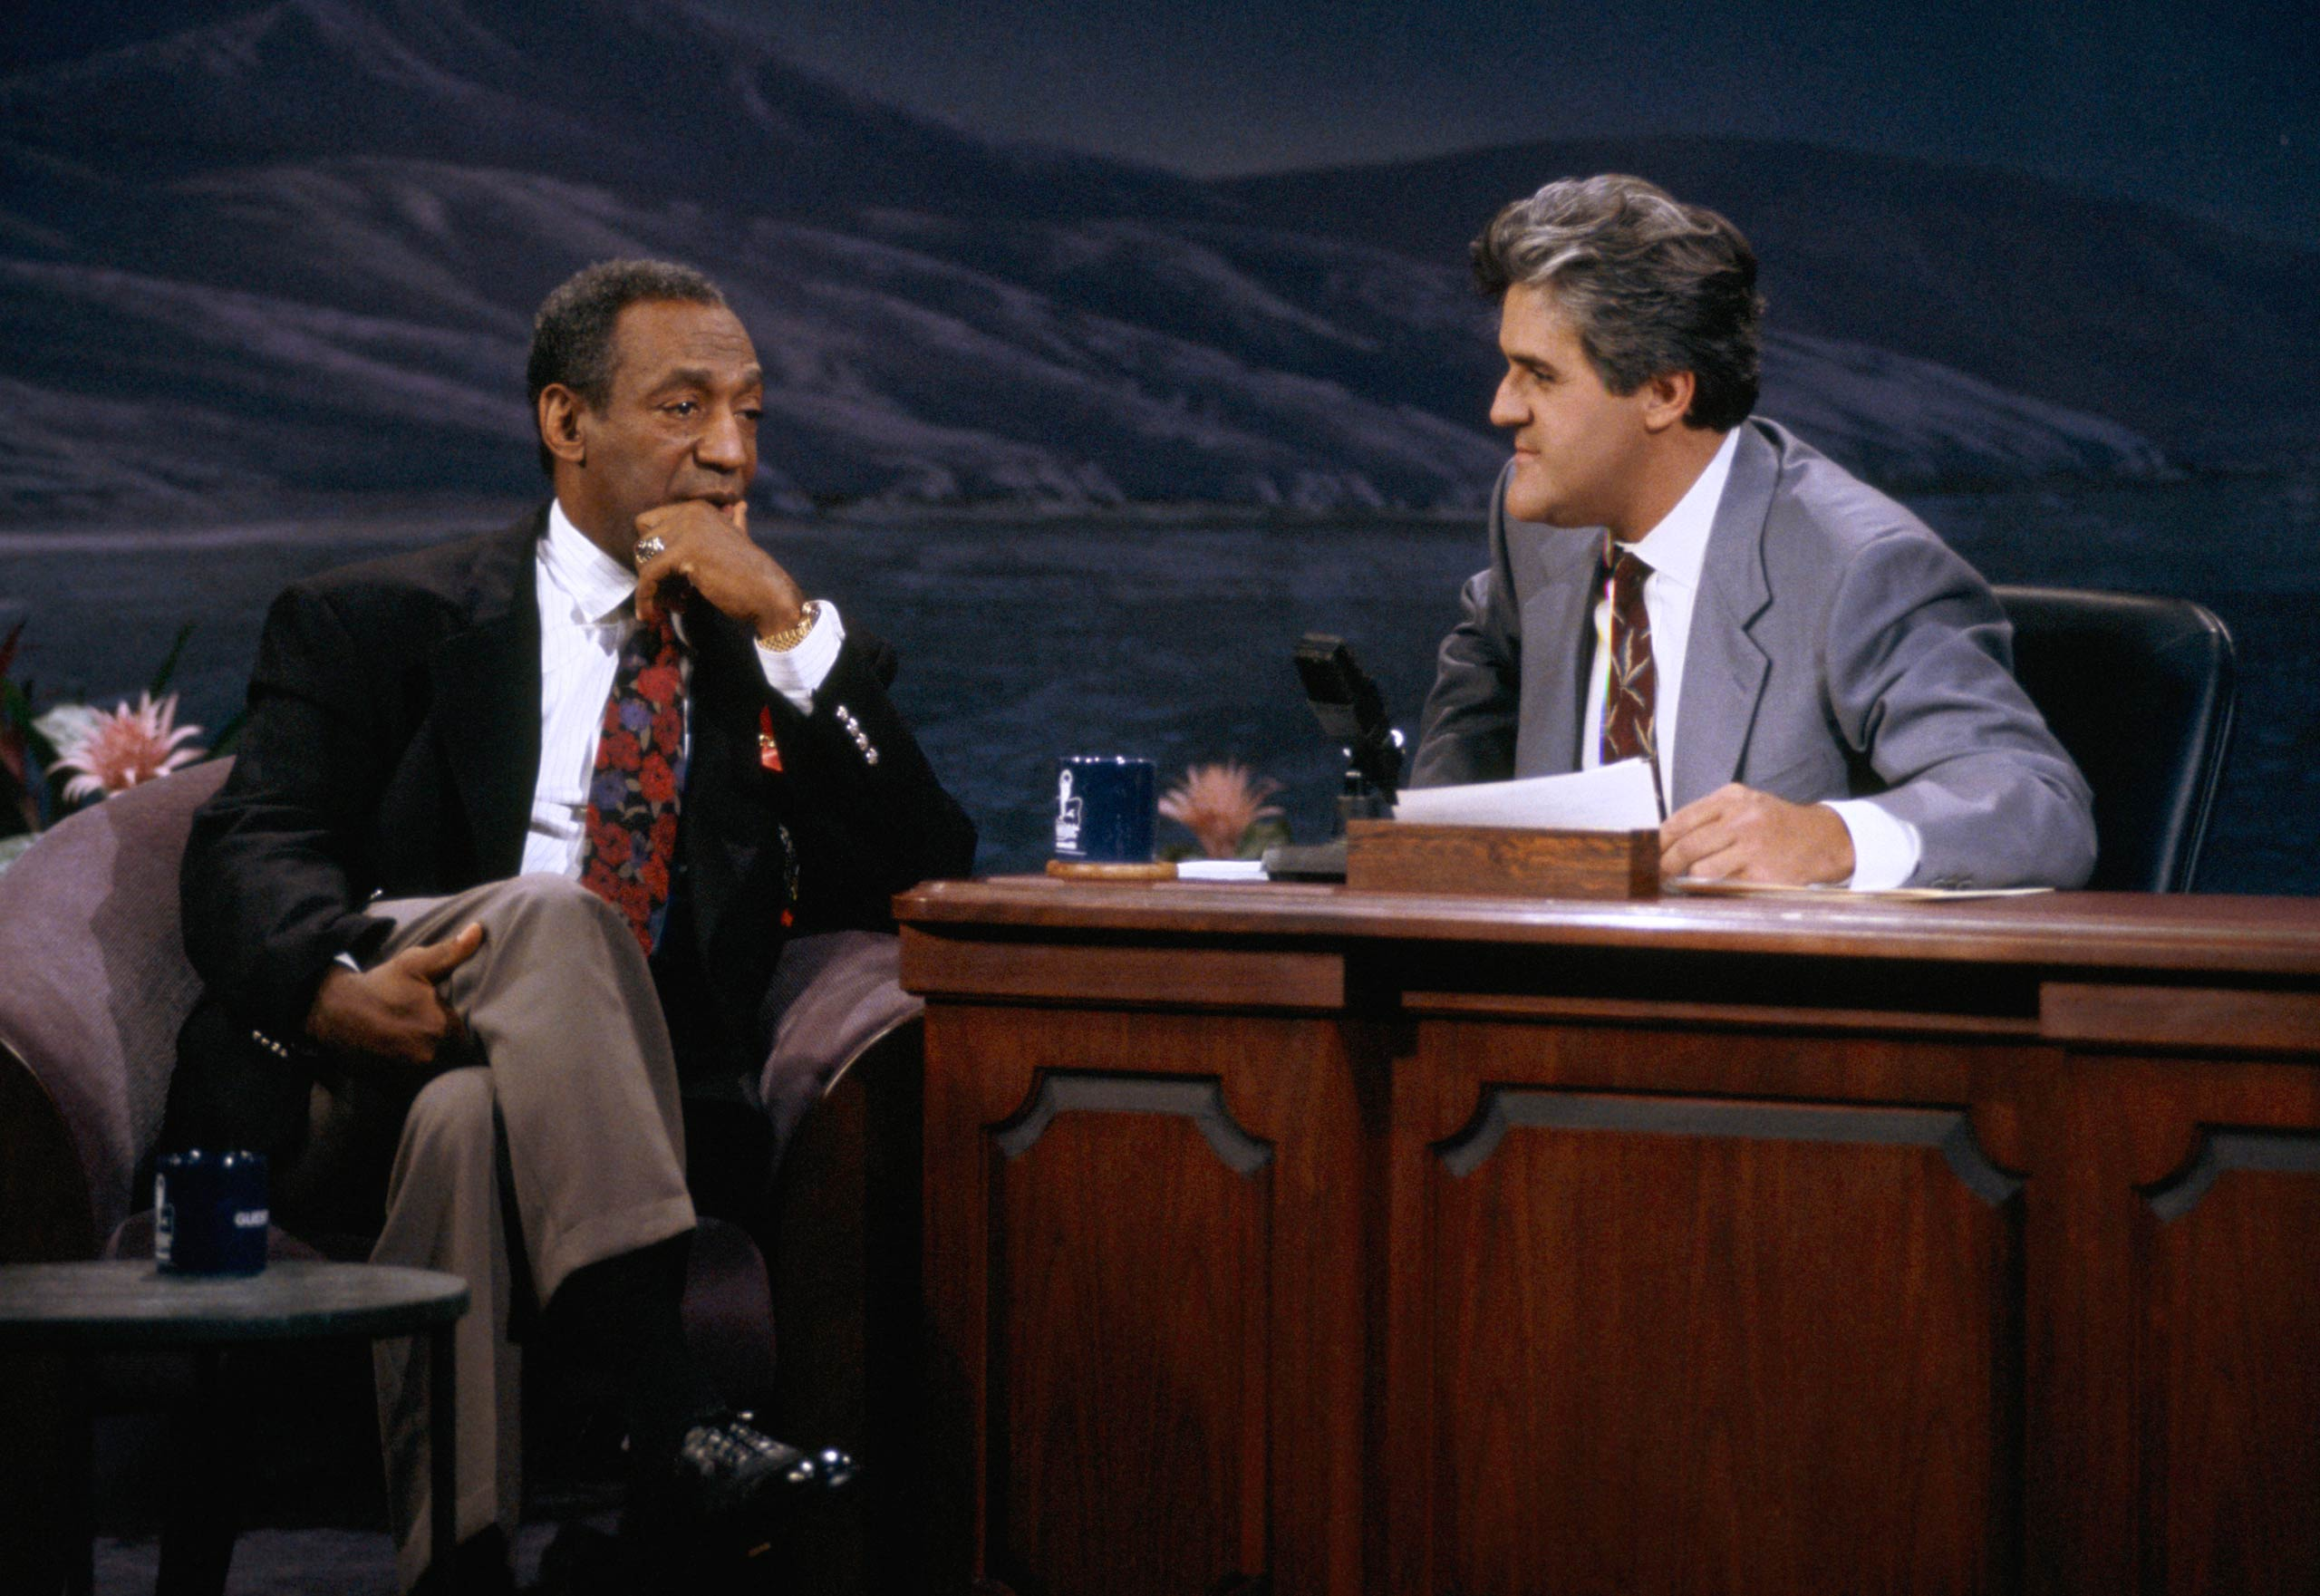 Bill Cosby is interviewed by Jay Leno on <i>The Tonight Show With Jay Leno</i> in 1992.